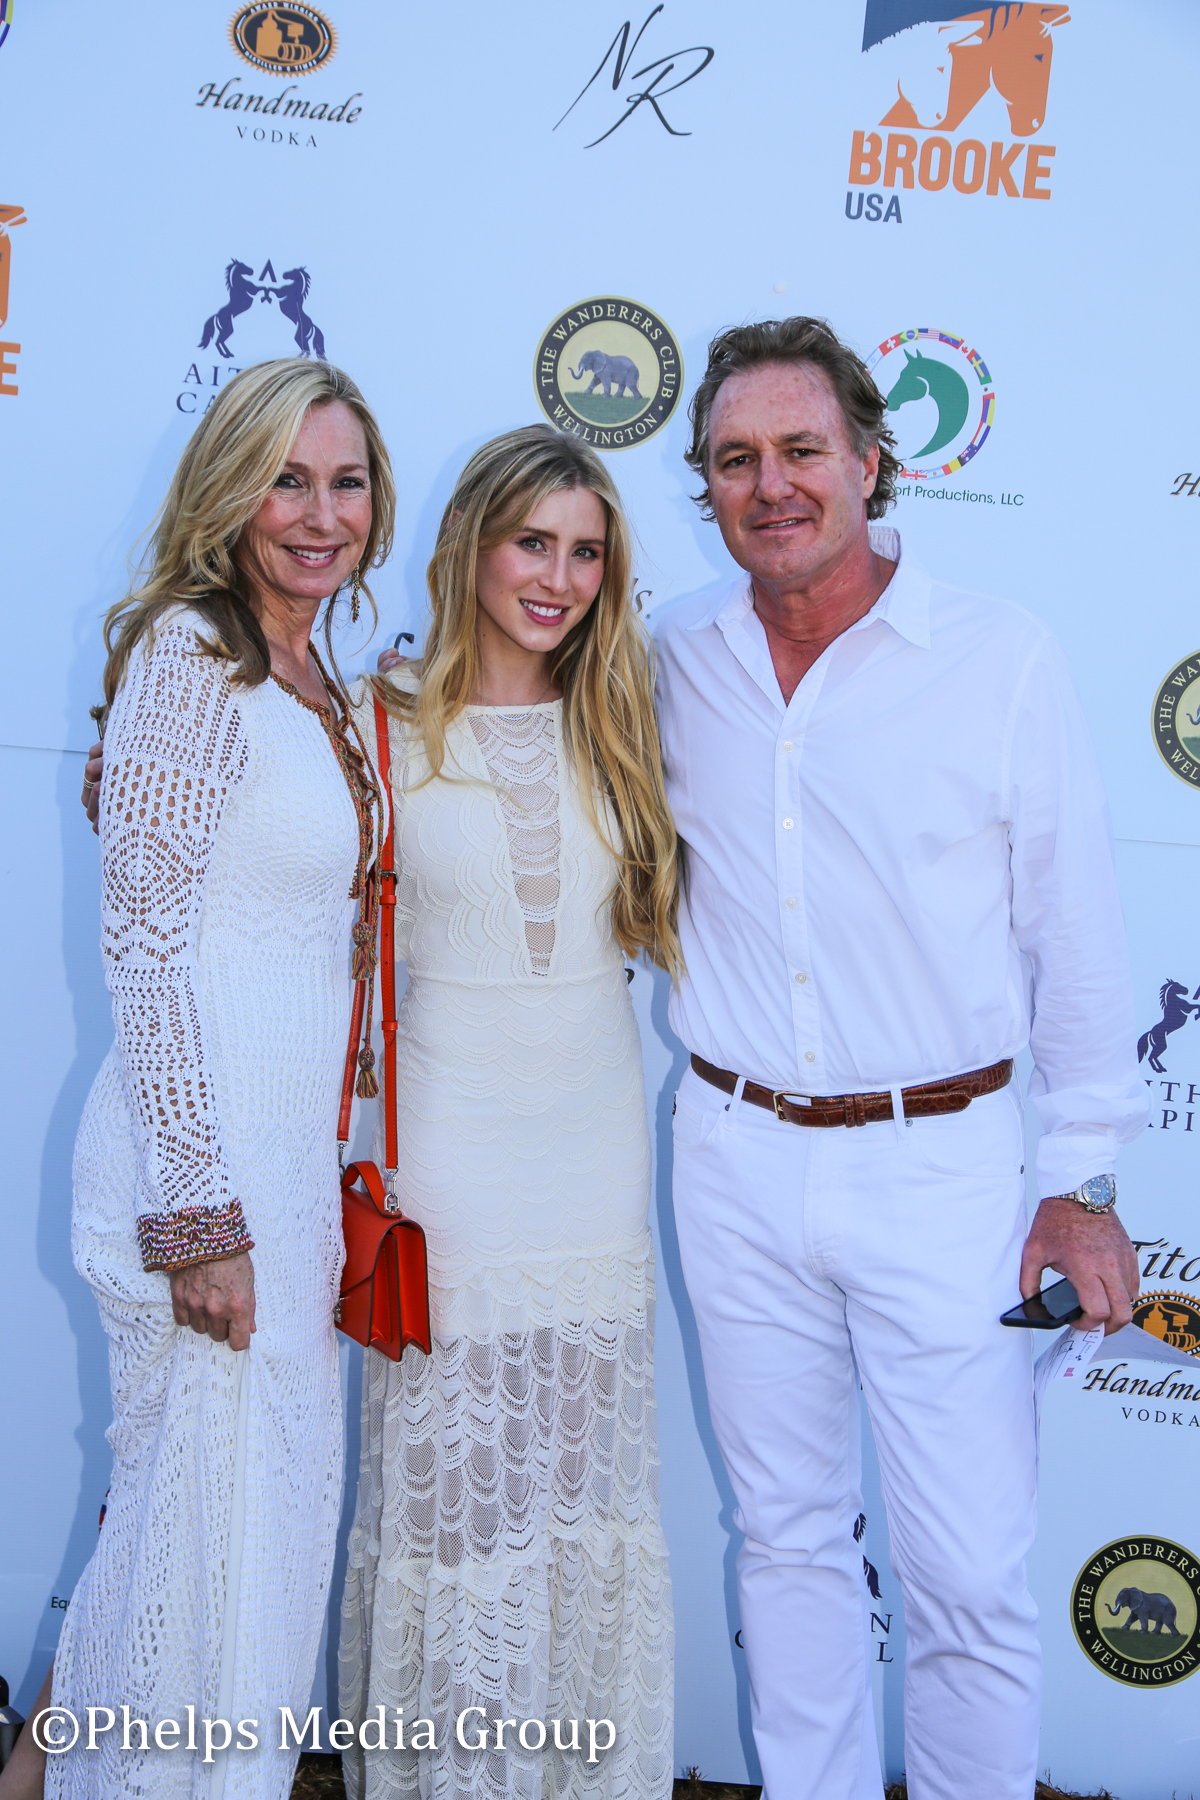 The Bellissismo Family; Nic Roldan's 2nd Annual Sunset Polo & White Party, FL, by Phelps Media.jpg